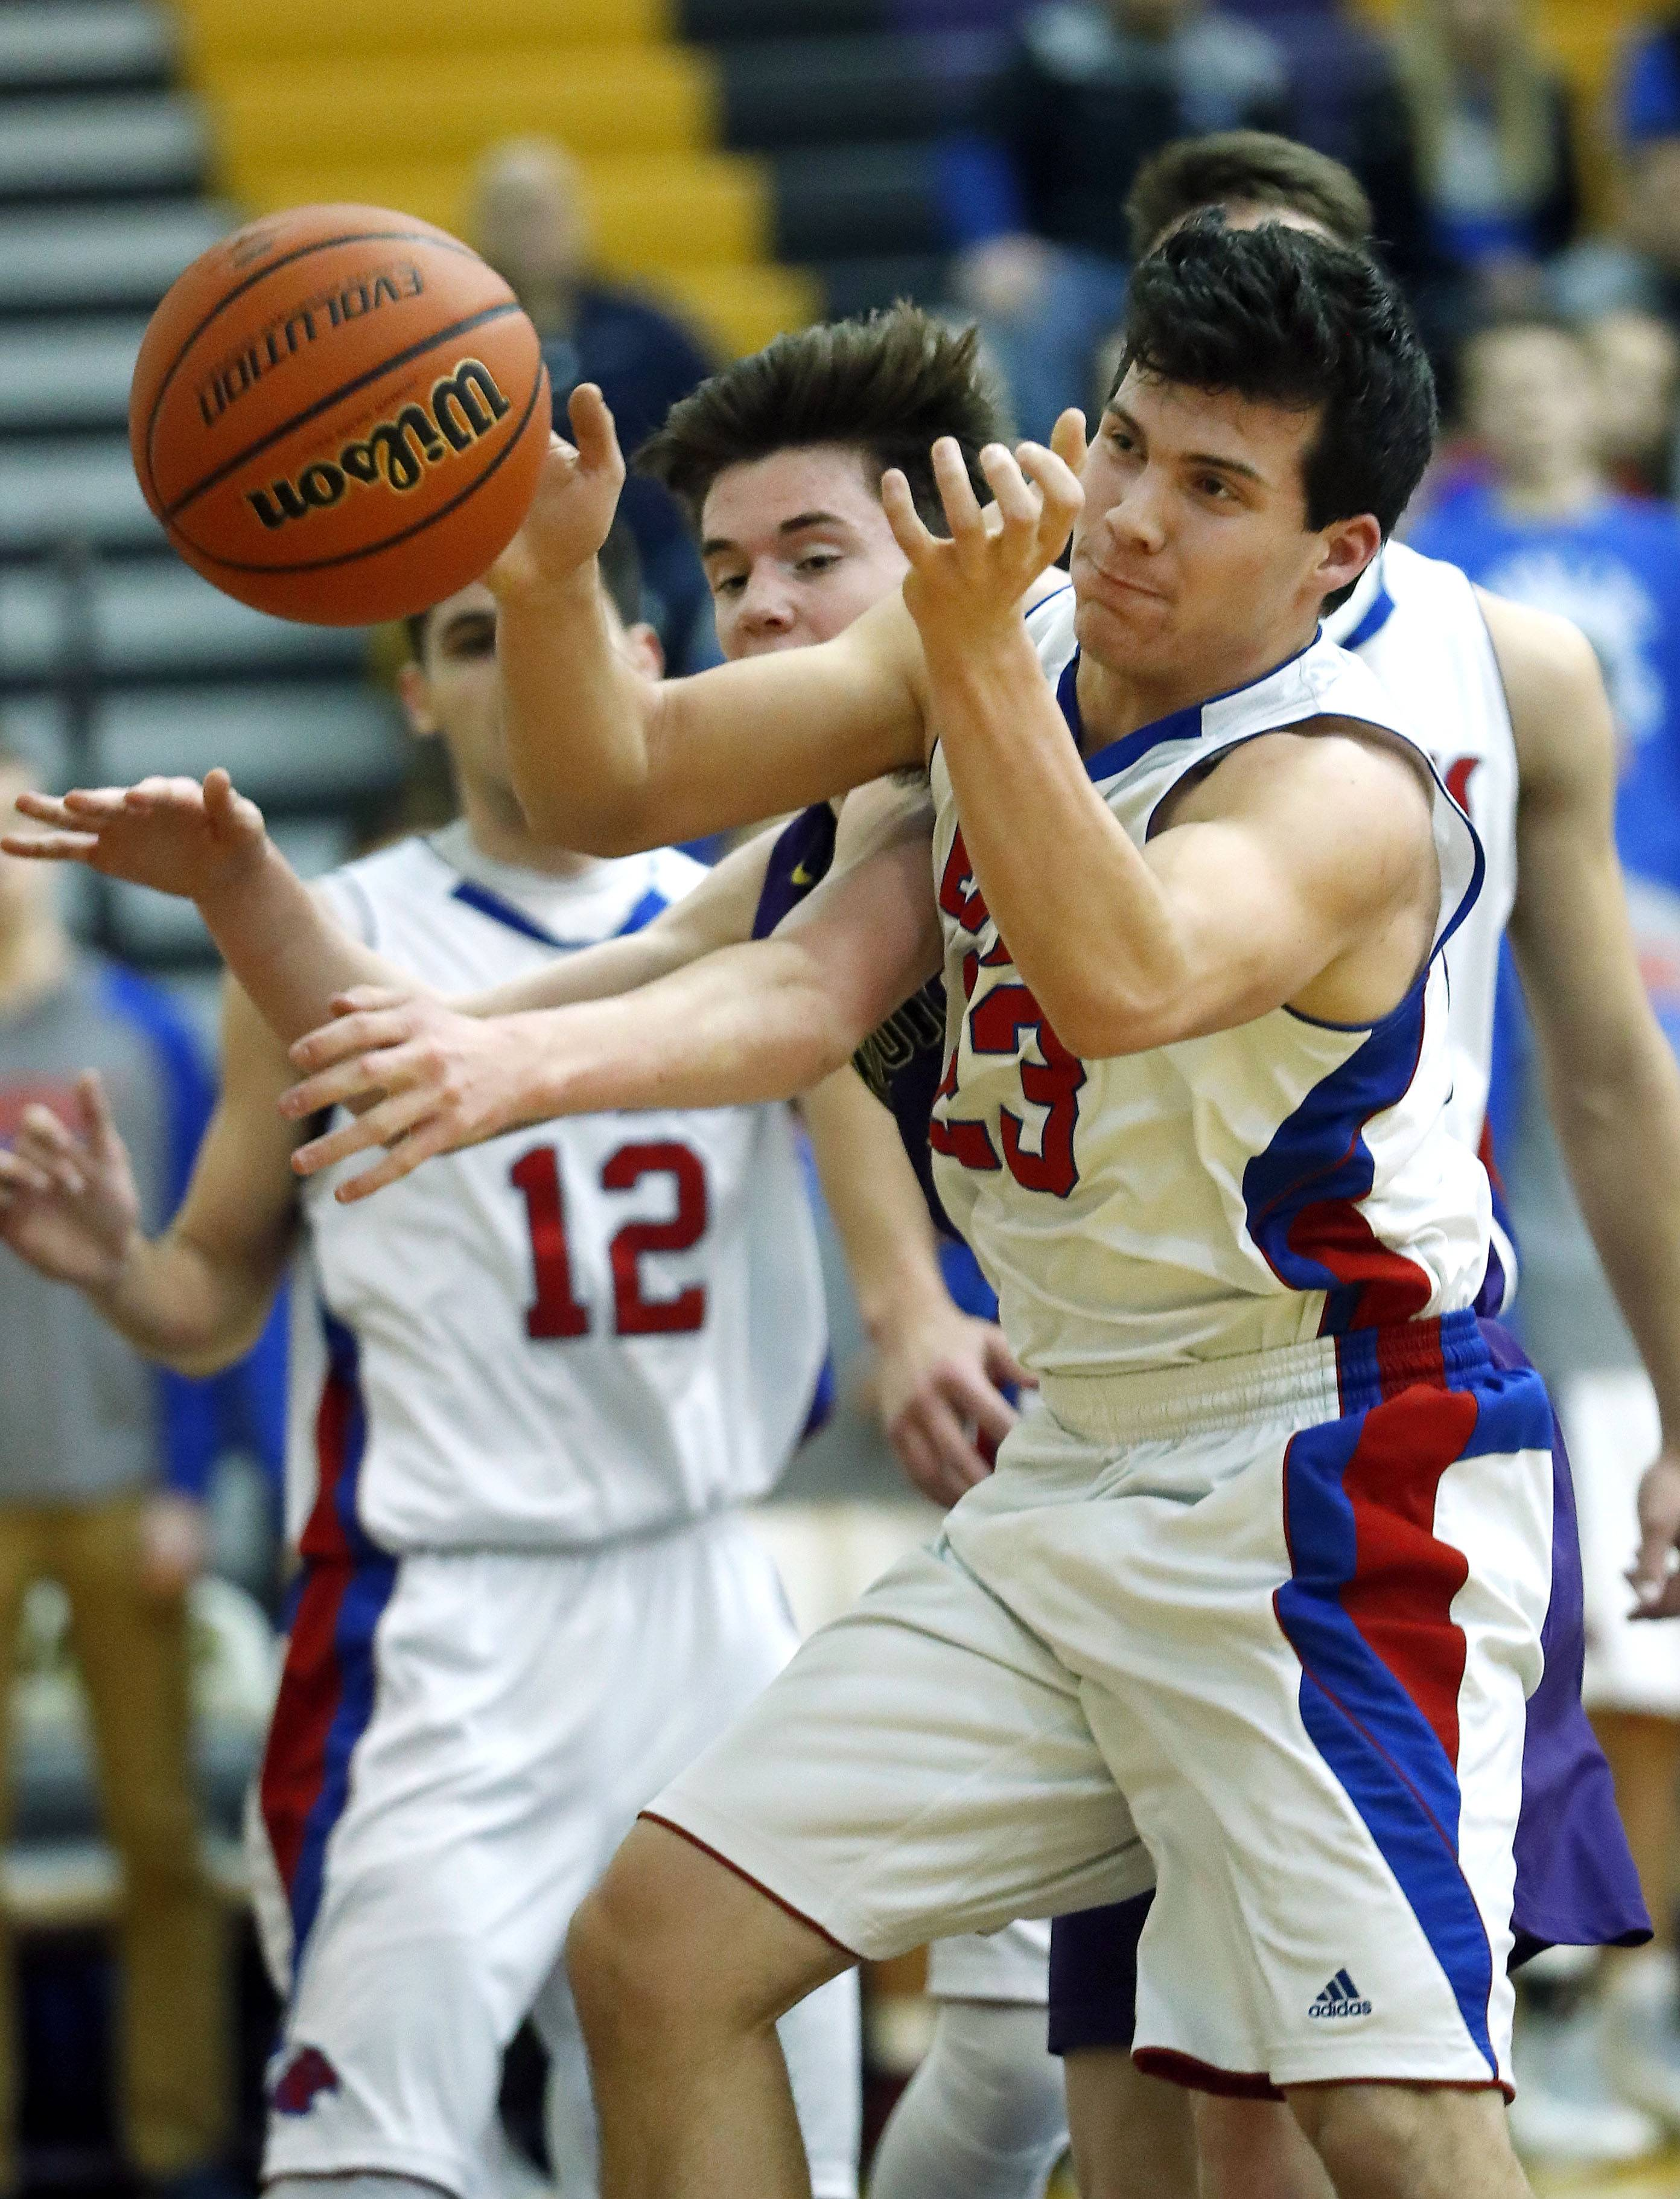 Lakes' Ethan Greenfield, right, fights for a rebound with Wauconda's Nick Bulgarelli.